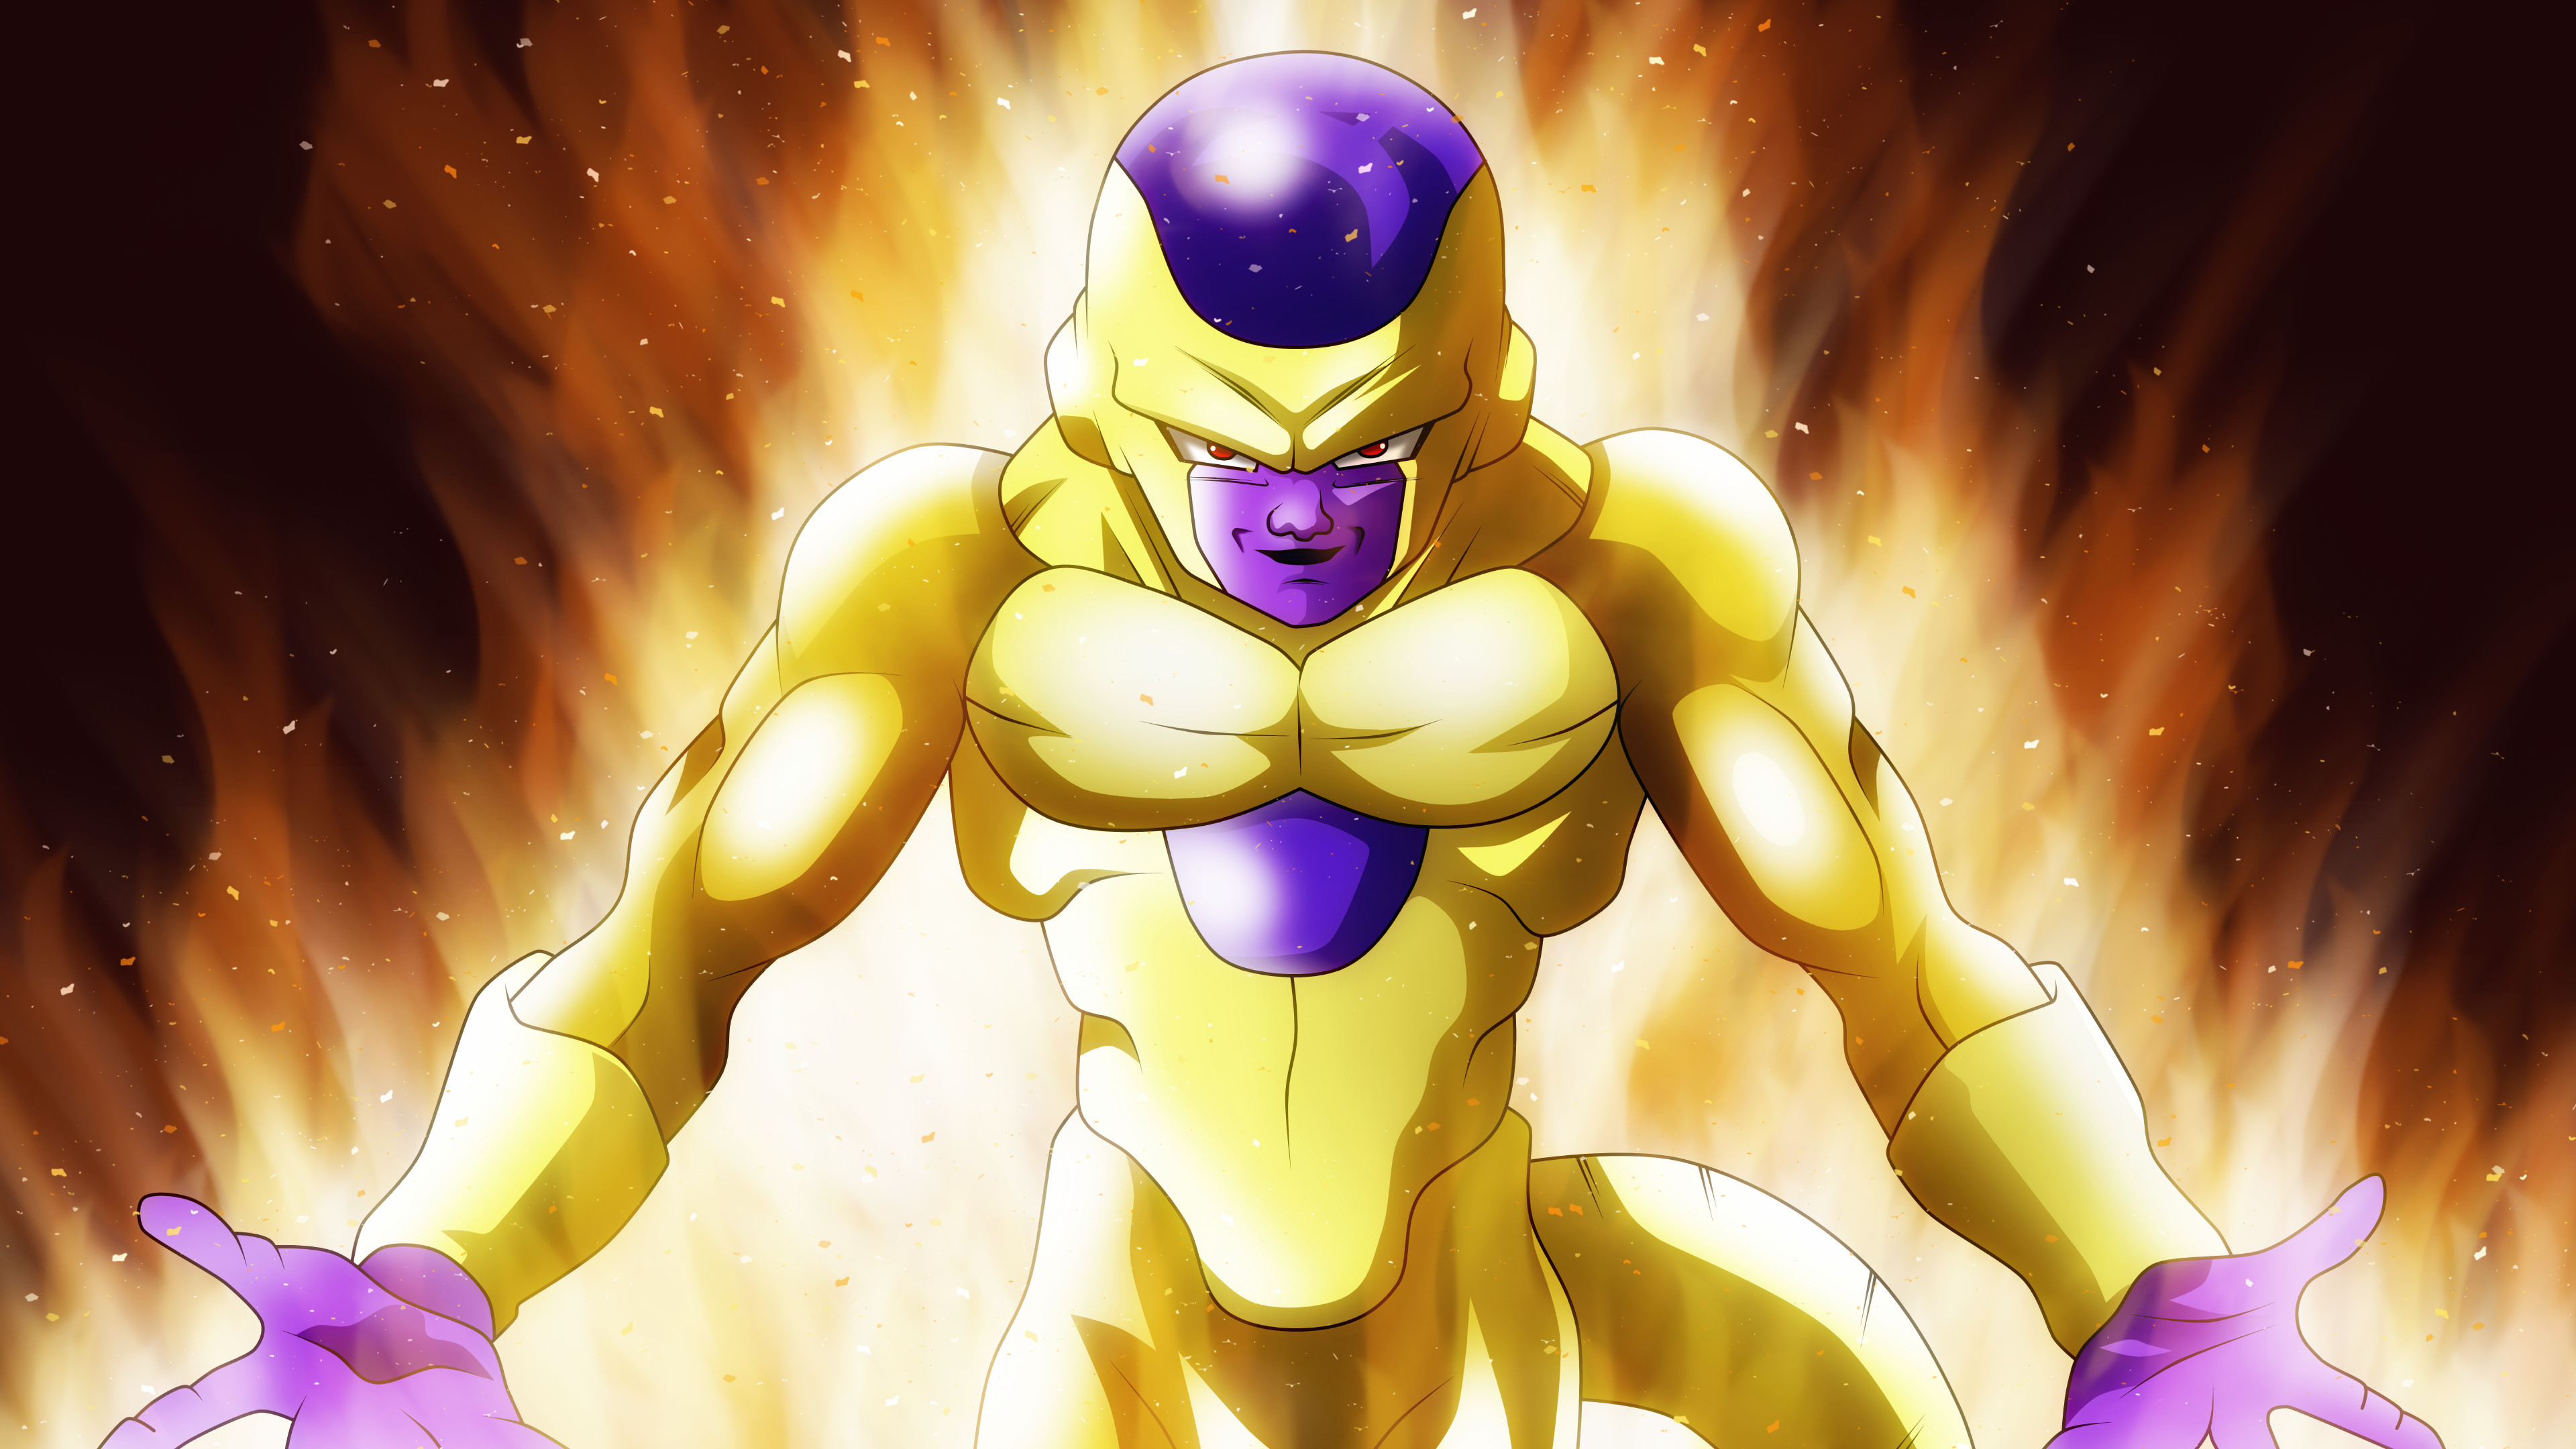 Dbz 3d Wallpapers Frieza Wallpaper 57 Images